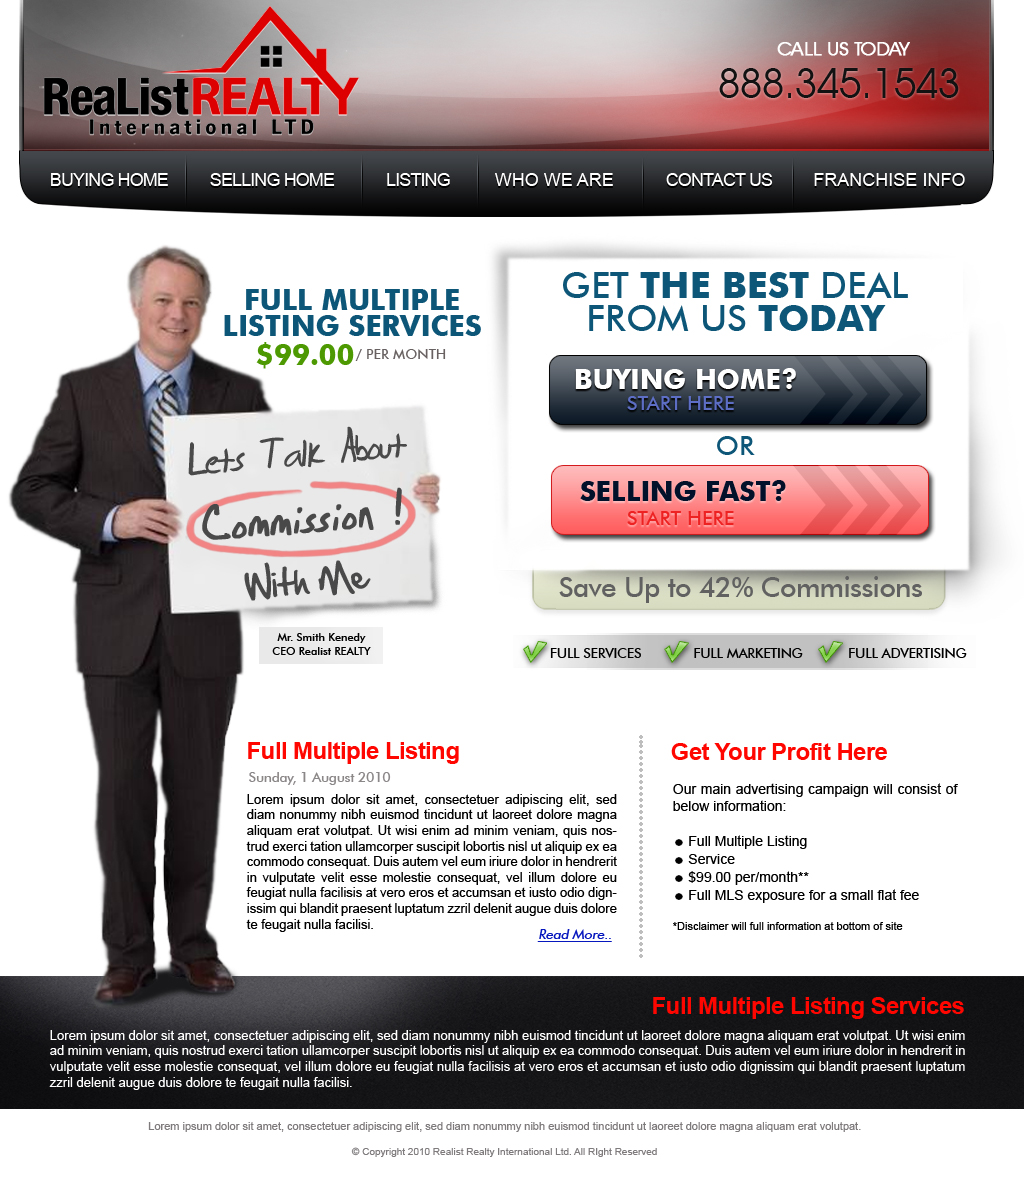 Web Page Design by myrvelous - Entry No. 143 in the Web Page Design Contest Realist Realty International Ltd..